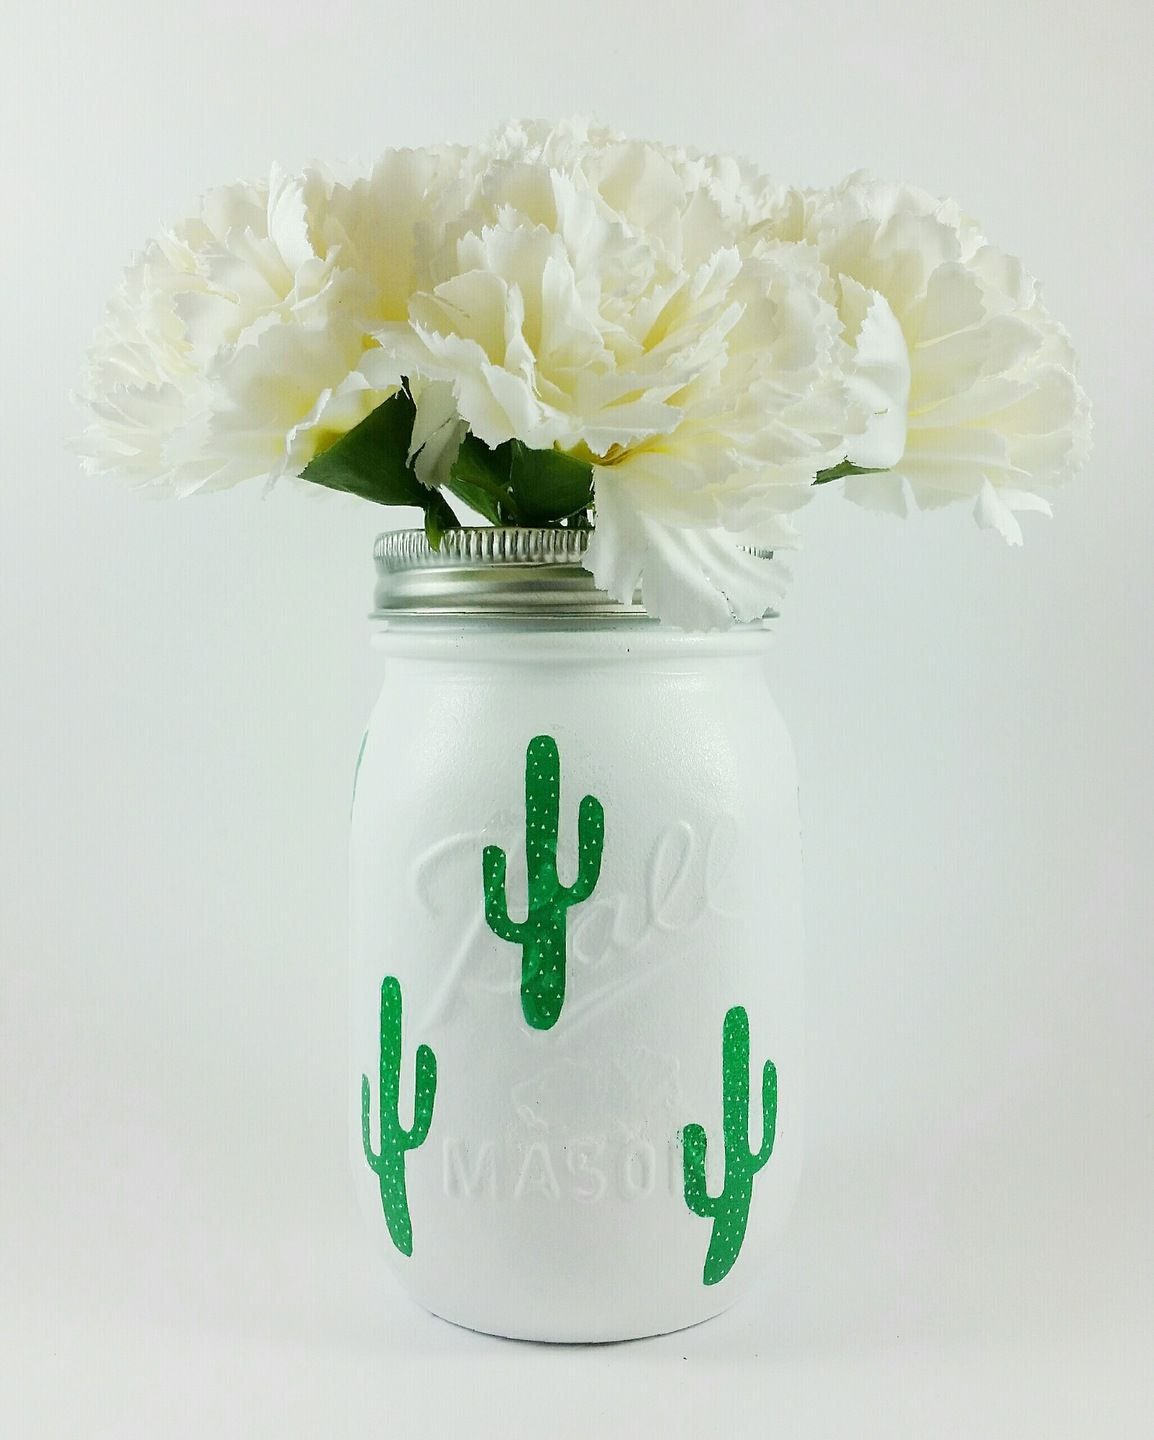 mason jar d coratif blanc cactus verts fonc s accessoires de maison par my pretty jar k. Black Bedroom Furniture Sets. Home Design Ideas